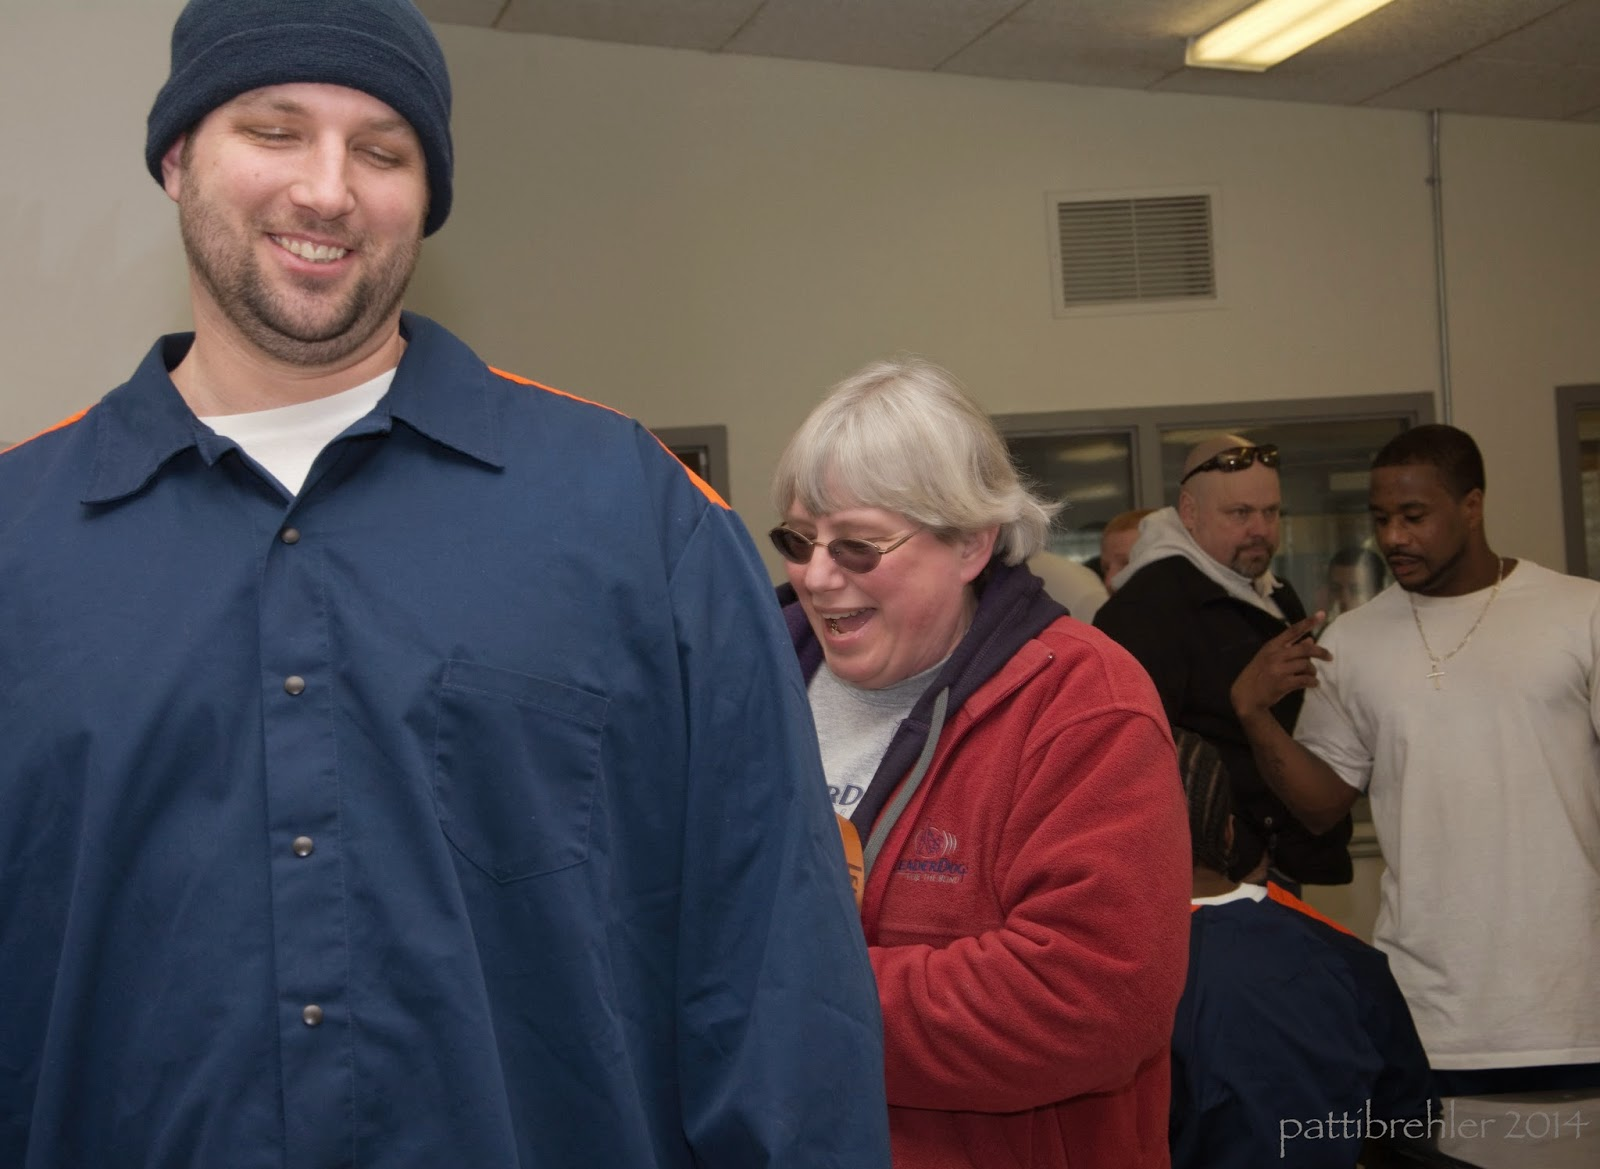 A tall man wearing a dark blue long sleeved shirt and a blue knit cap is facing the camera on the left side. He is smiling and his eyes are closed. To the right behind him is a shorter woman with short white hair and glasses, she is wearing a red fleece jacket. She is holding something behind the man's back out of view and is looking at it, it appears she is laughing. In the far background are two men standing, one is african american and is wearing a white t-shirt, the other man is bald and has sunglasses on the top of his head and is wearing a black jacket.